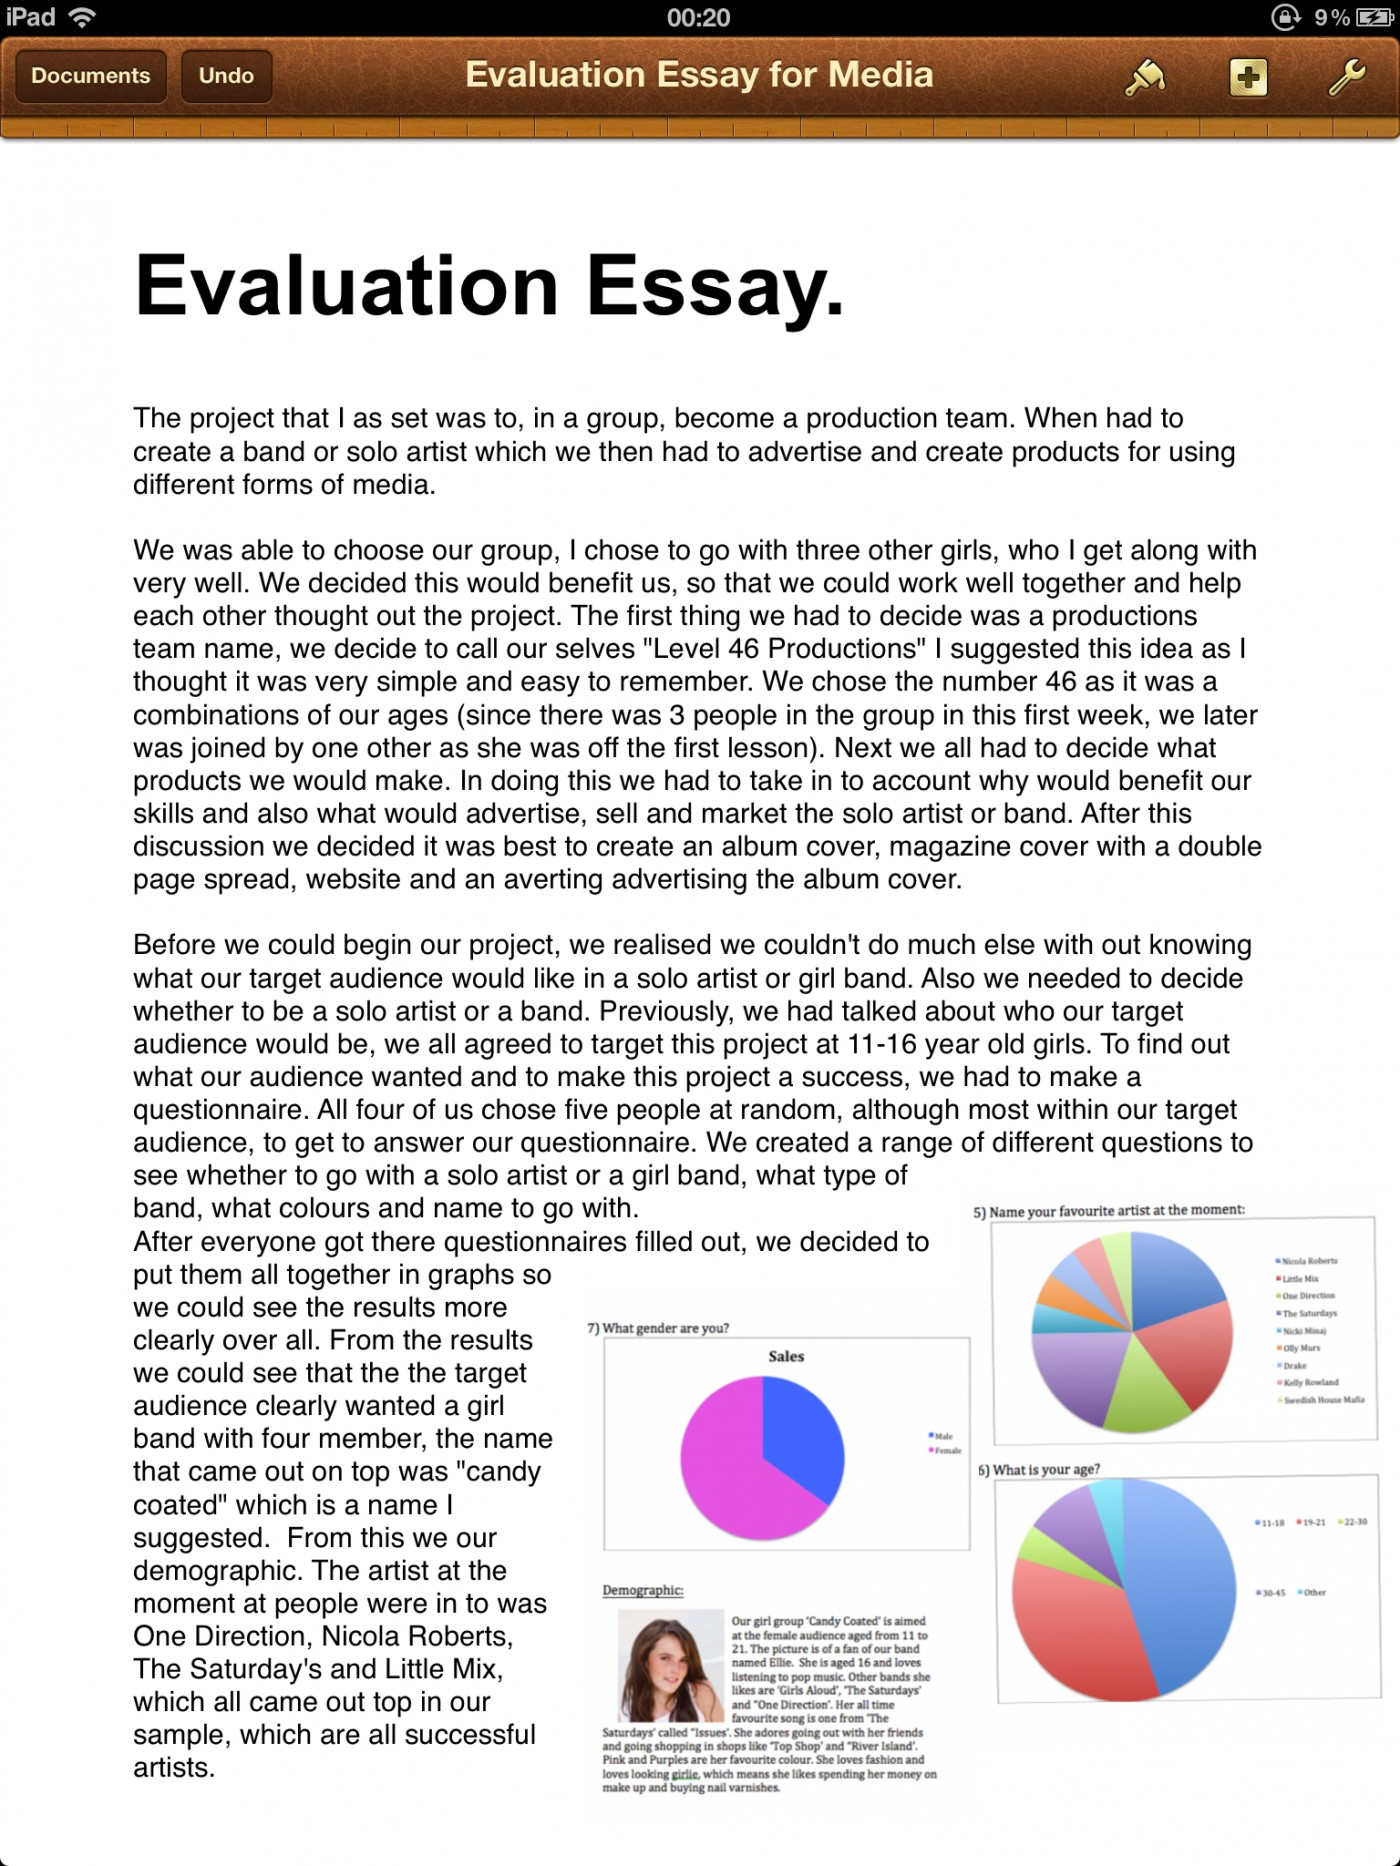 010 Pg Essay Example Incredible Evaluation Book Samples On Movies Self Format 1400